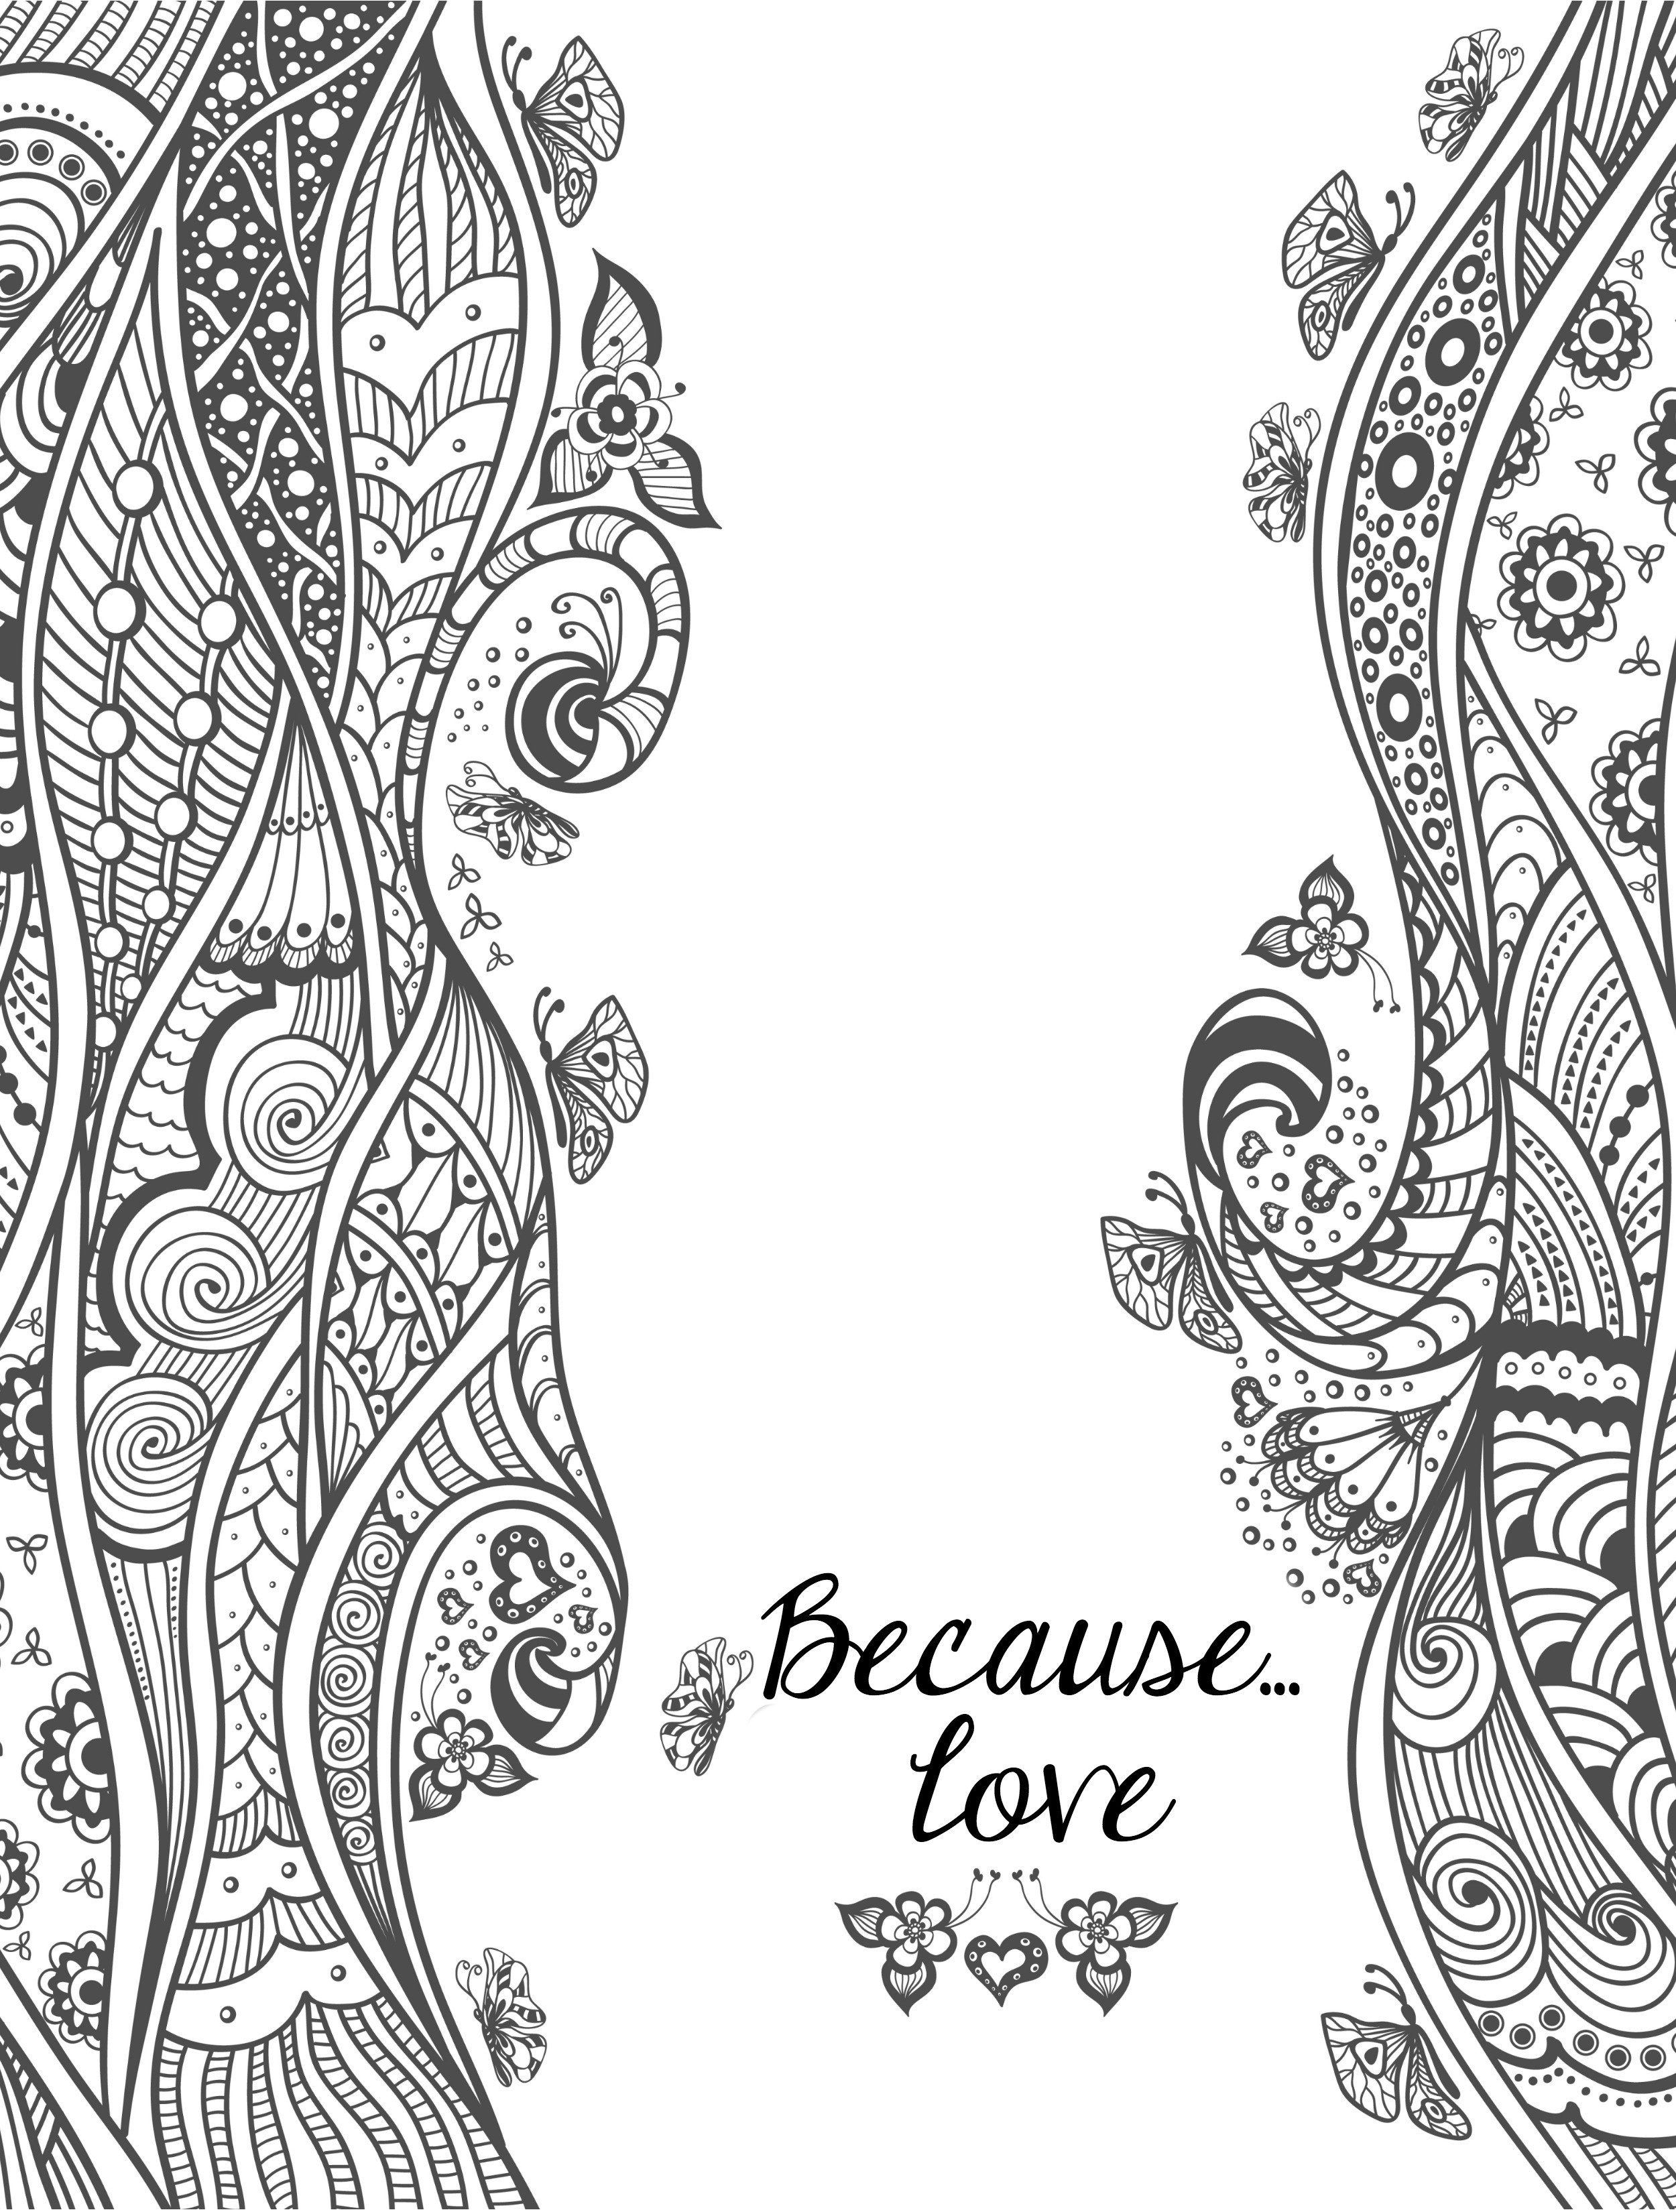 Free Printable I Love You Coloring Pages For Adults  20 Free Printable Valentines Adult Coloring Pages Nerdy